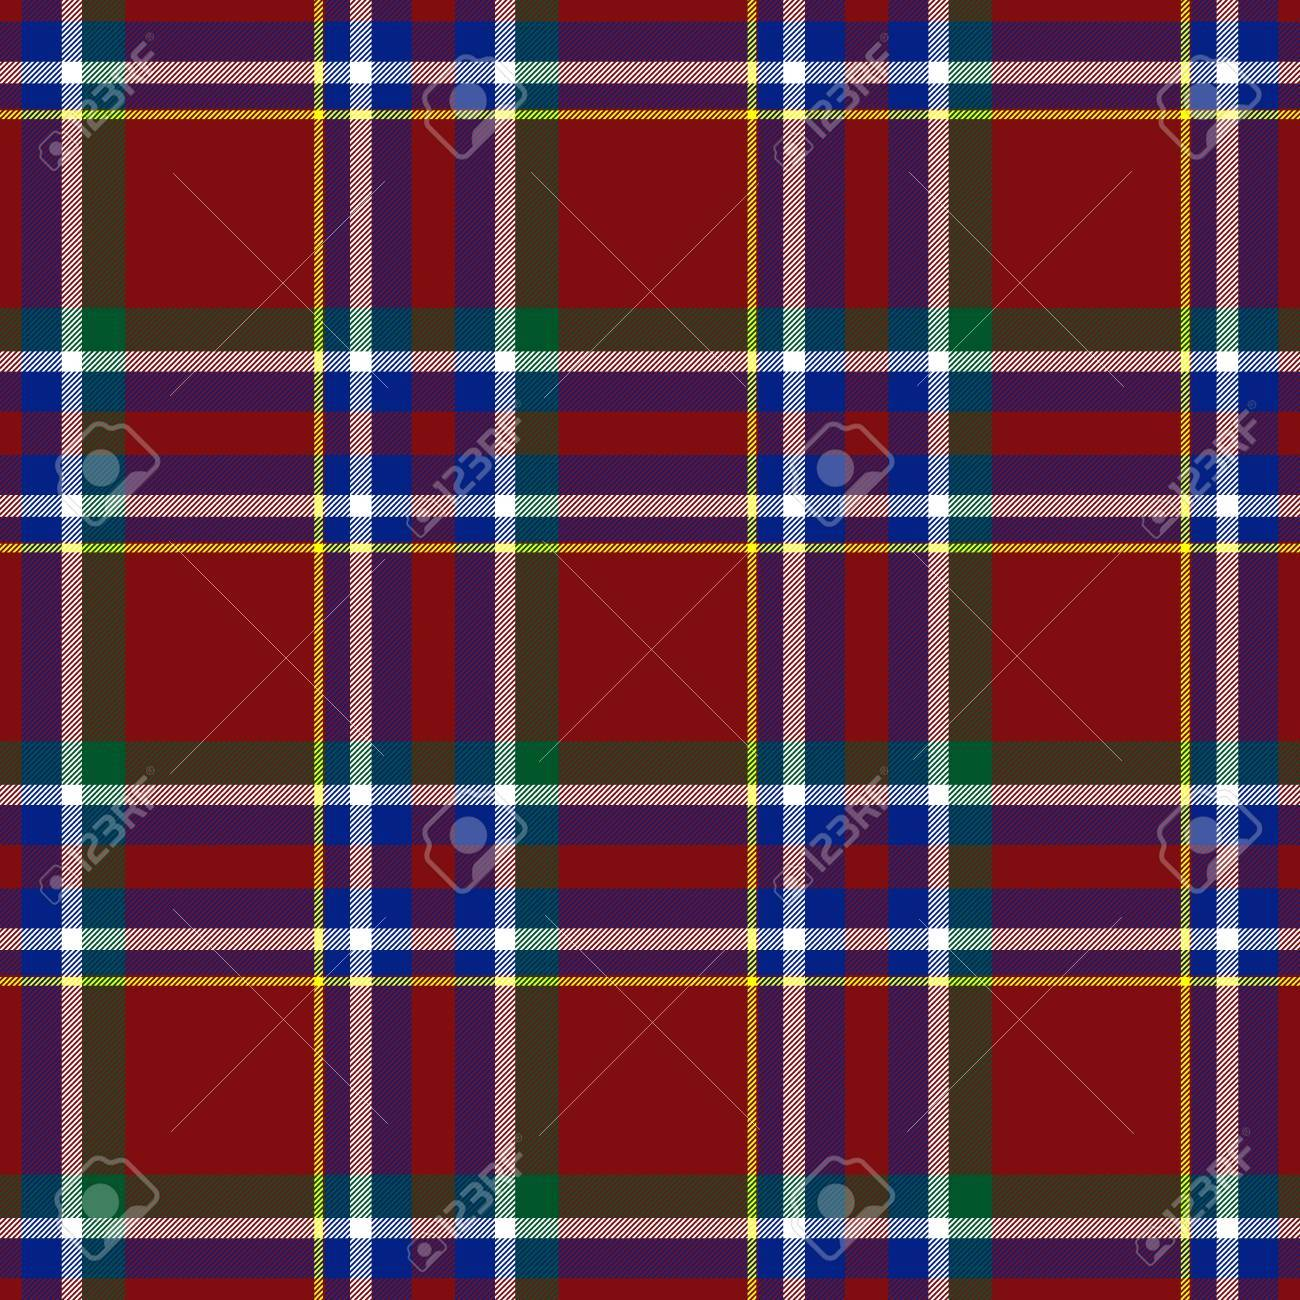 Traditional Scottish red, blue, green tartan pattern with white